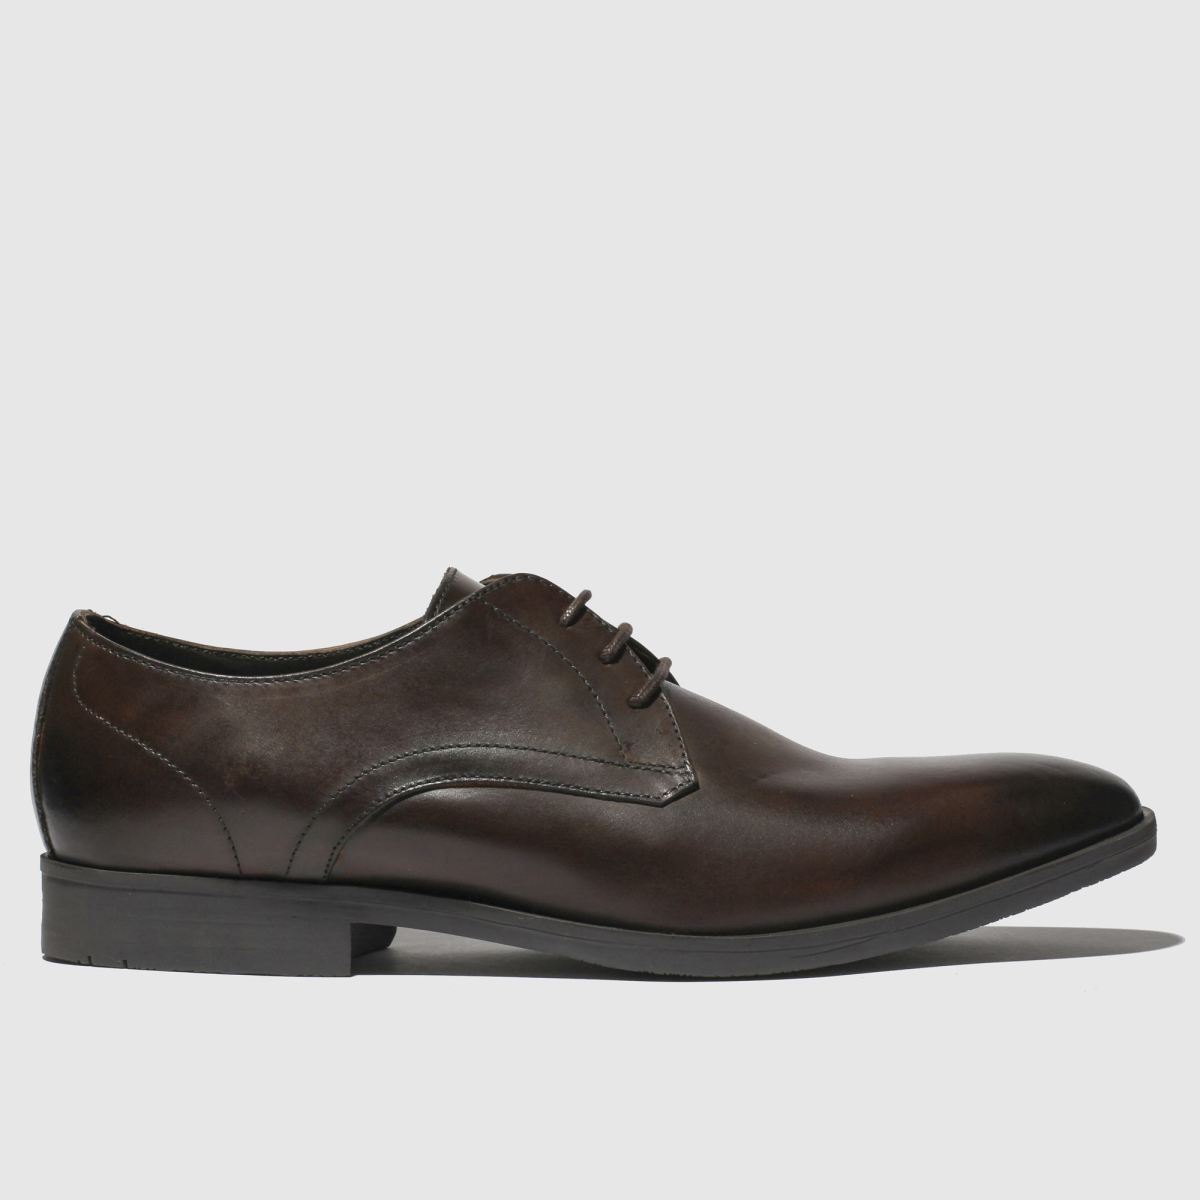 Ikon Brown Cresta Shoes